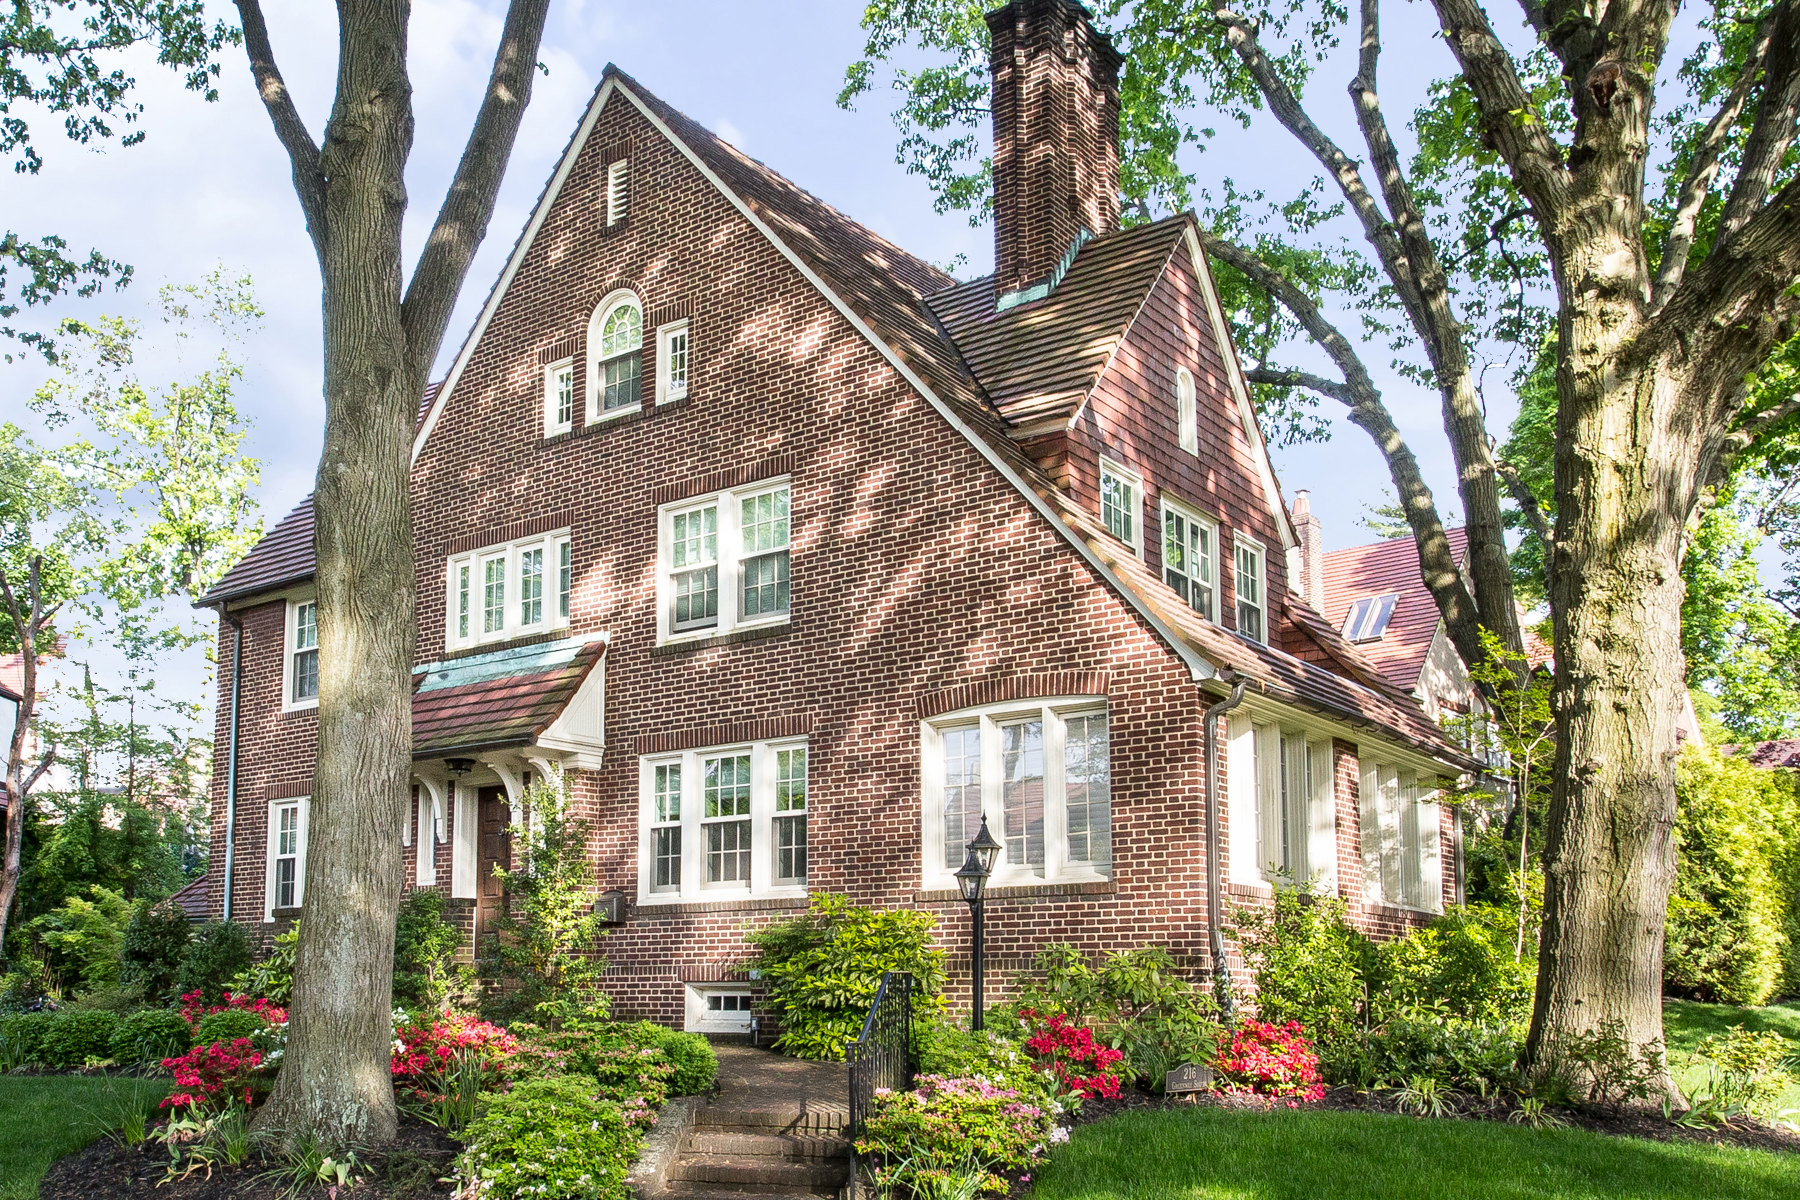 """Single Family Homes for Sale at """"COMMANDING VIEWS OVER EMBASSY ROW"""" 216 Greenway South,, Forest Hills Gardens, Forest Hills, New York 11375 United States"""